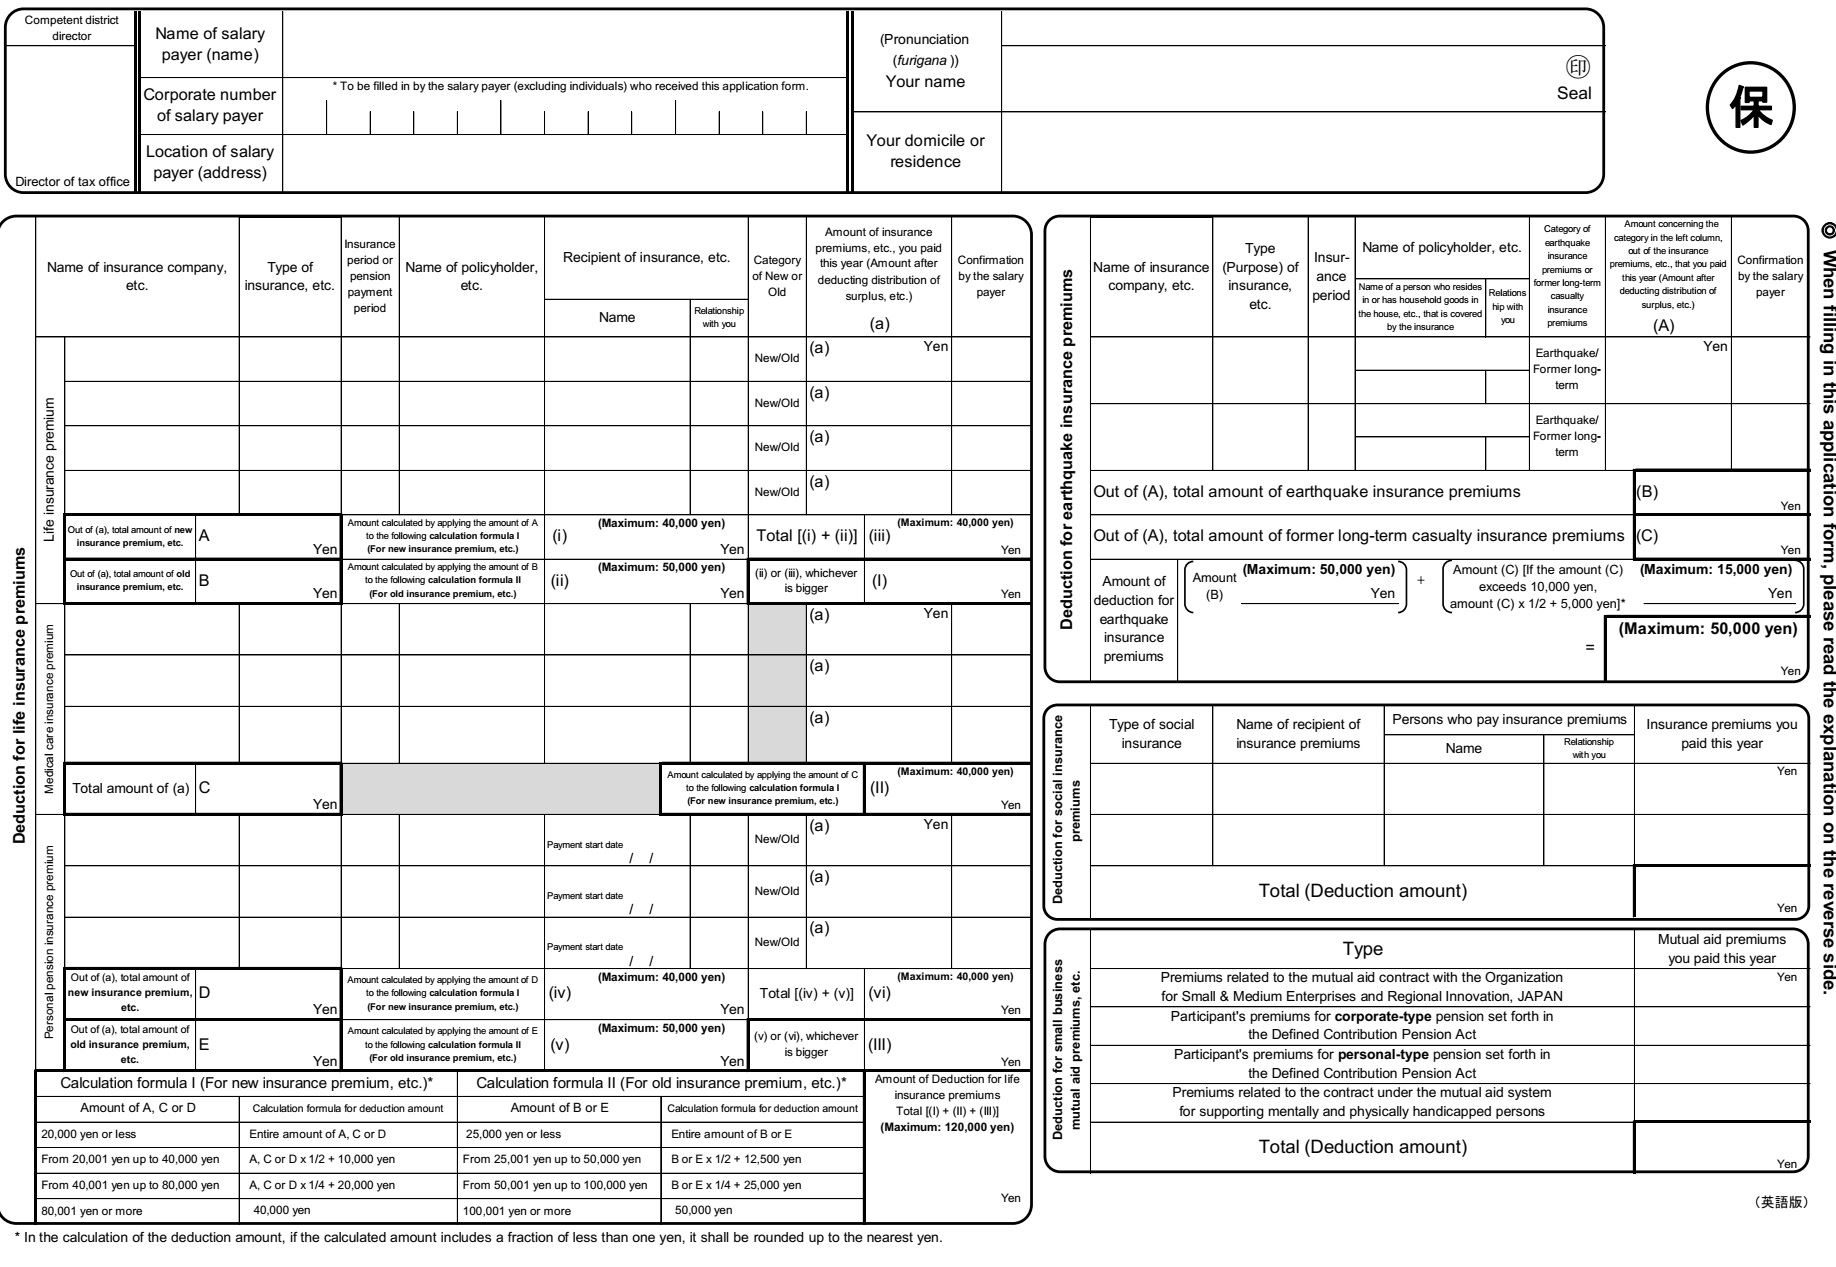 English version of tax exemption for insurance premium form